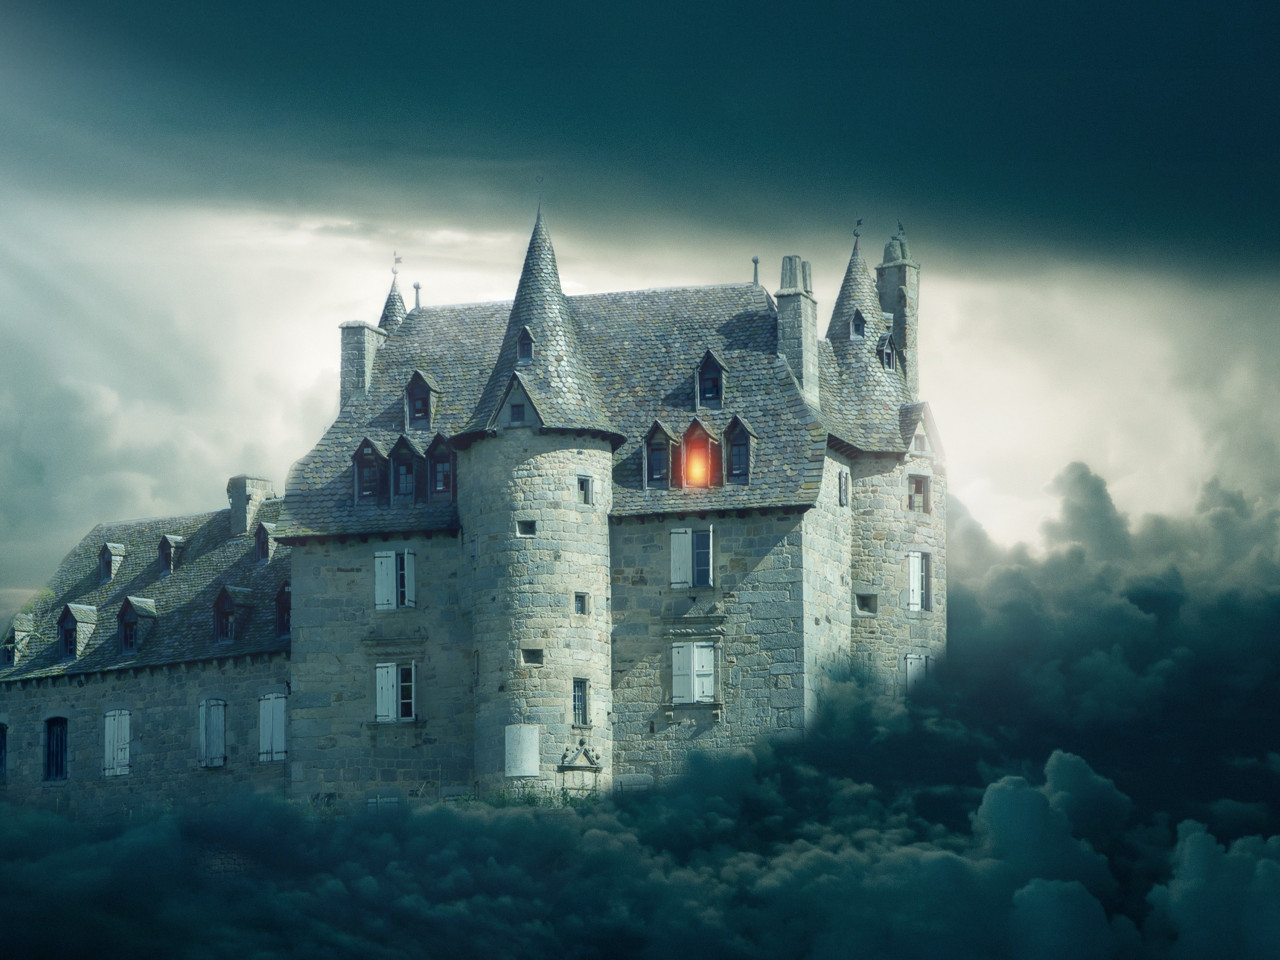 Gothic castle | 1280x960 wallpaper